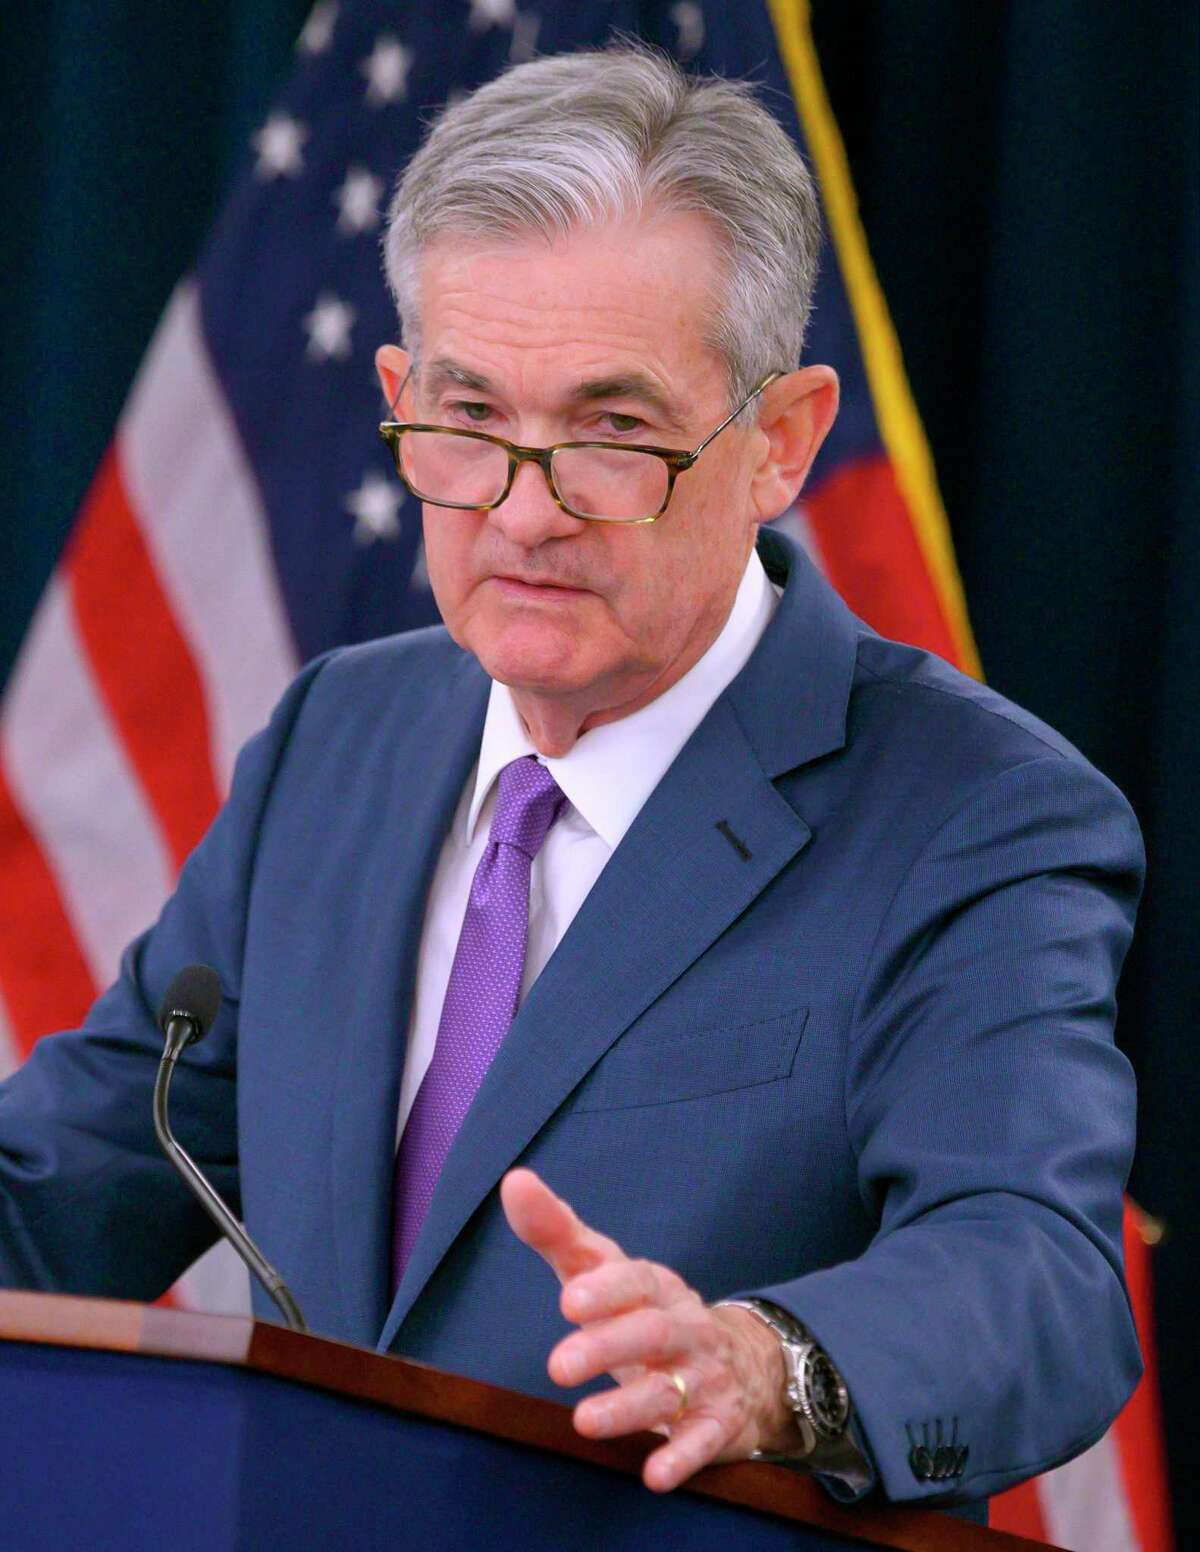 (FILES) In this file photo taken on July 31, 2019 US Federal Reserve Chairman Jerome Powell speaks during a press conference after a Federal Open Market Committee meeting in Washington, DC. - President Donald Trump resumed his attacks on Federal Reserve Chair Jerome Powell on August 21, 2019, blaming him for keeping the economy from growing much faster.In yet another Twitter screed, Trump said,